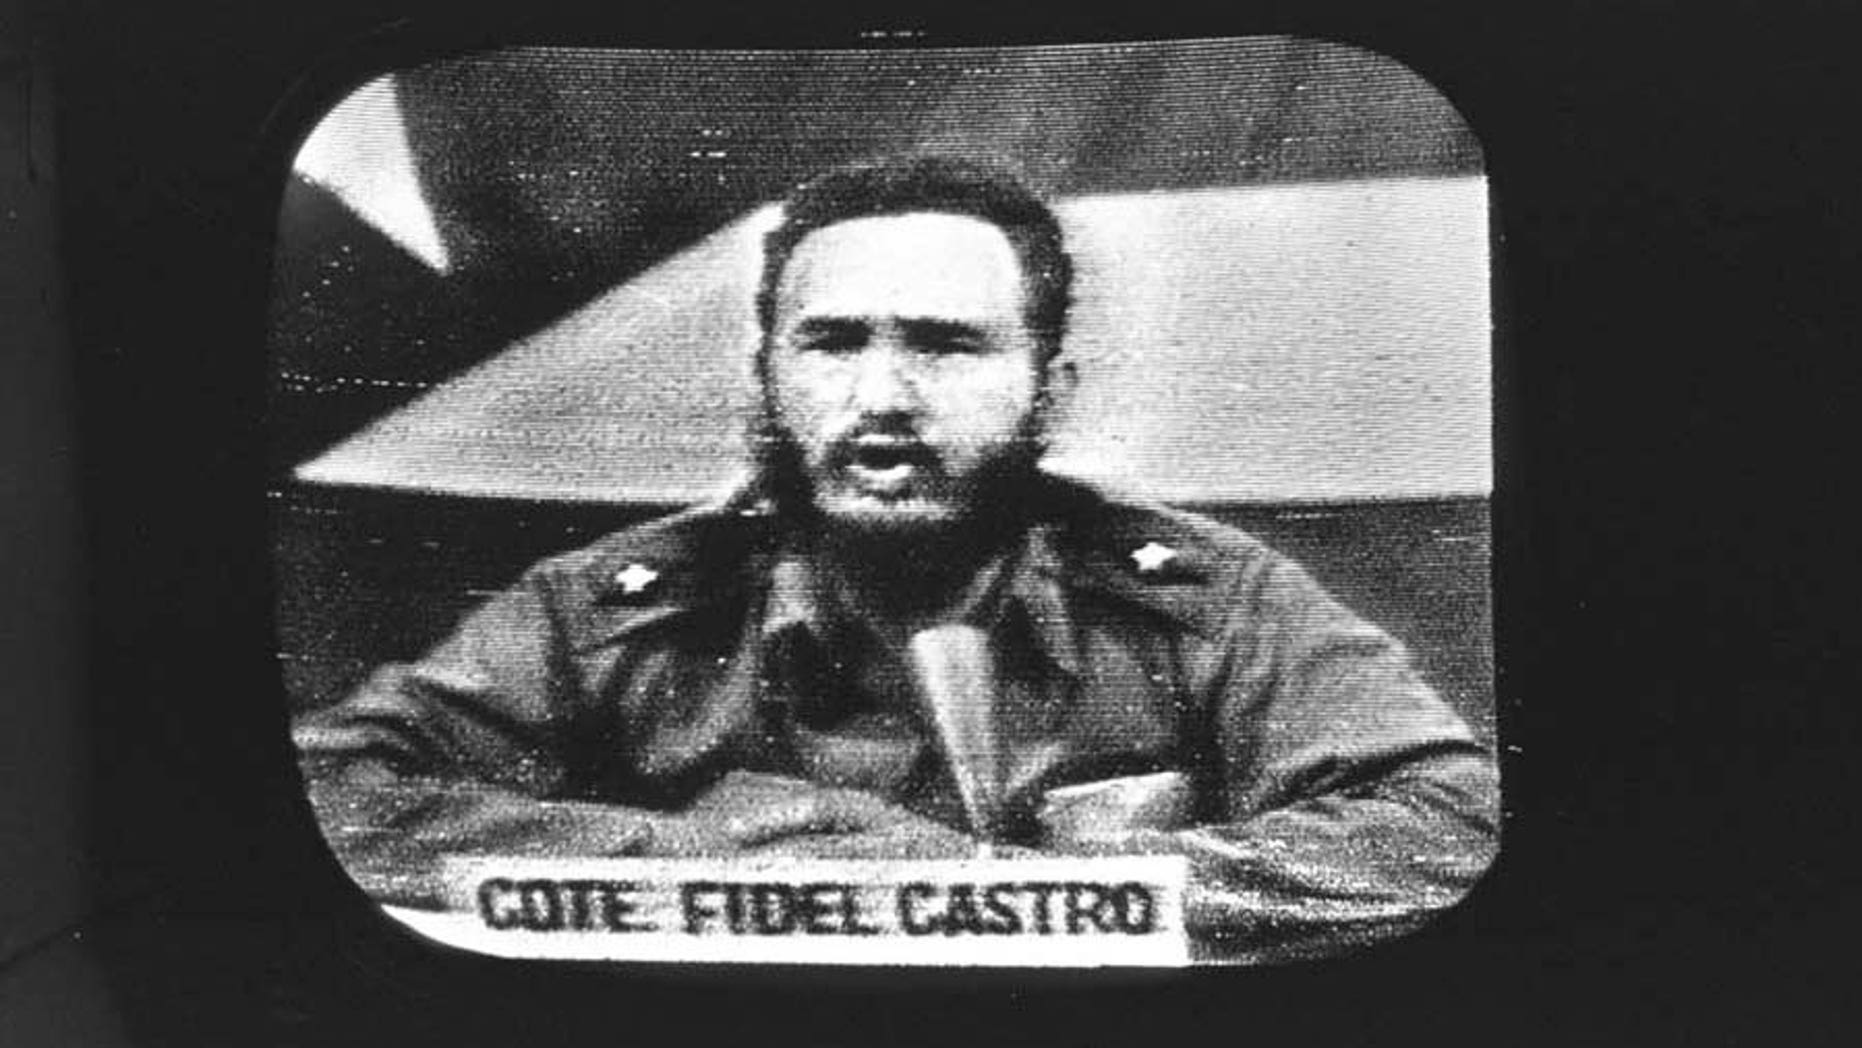 """This two picture combination shows, above: in a Oct. 23, 1962 file photo, Cuban Prime Minister Fidel Castro replies to President Kennedy's naval blockade over Cuban radio and television as seen on a television monitor at Key West, Fla.; and below, in a Aug. 9, 2010 file photo, a man walks past souvenir plates featuring Mao Zedong, the founder of the People's Republic of China, right, and an emblem of Kuomintang (National People's Party) that fought Mao's forces in a civil war, at an antique market Monday, in Shanghai. The many long, strange trips that began in 1960 and led, today, to what we know as """"the 1960s"""" can be looked at through several perspectives. One journey begins with the Cuban missile crisis, anti-Communist paranoia and militant radicalism, and emerges as Chairman Mao coffee mugs and Che Guevara T-shirts on sale at the mall. (AP Photos/File, Eugene Hoshiko)"""